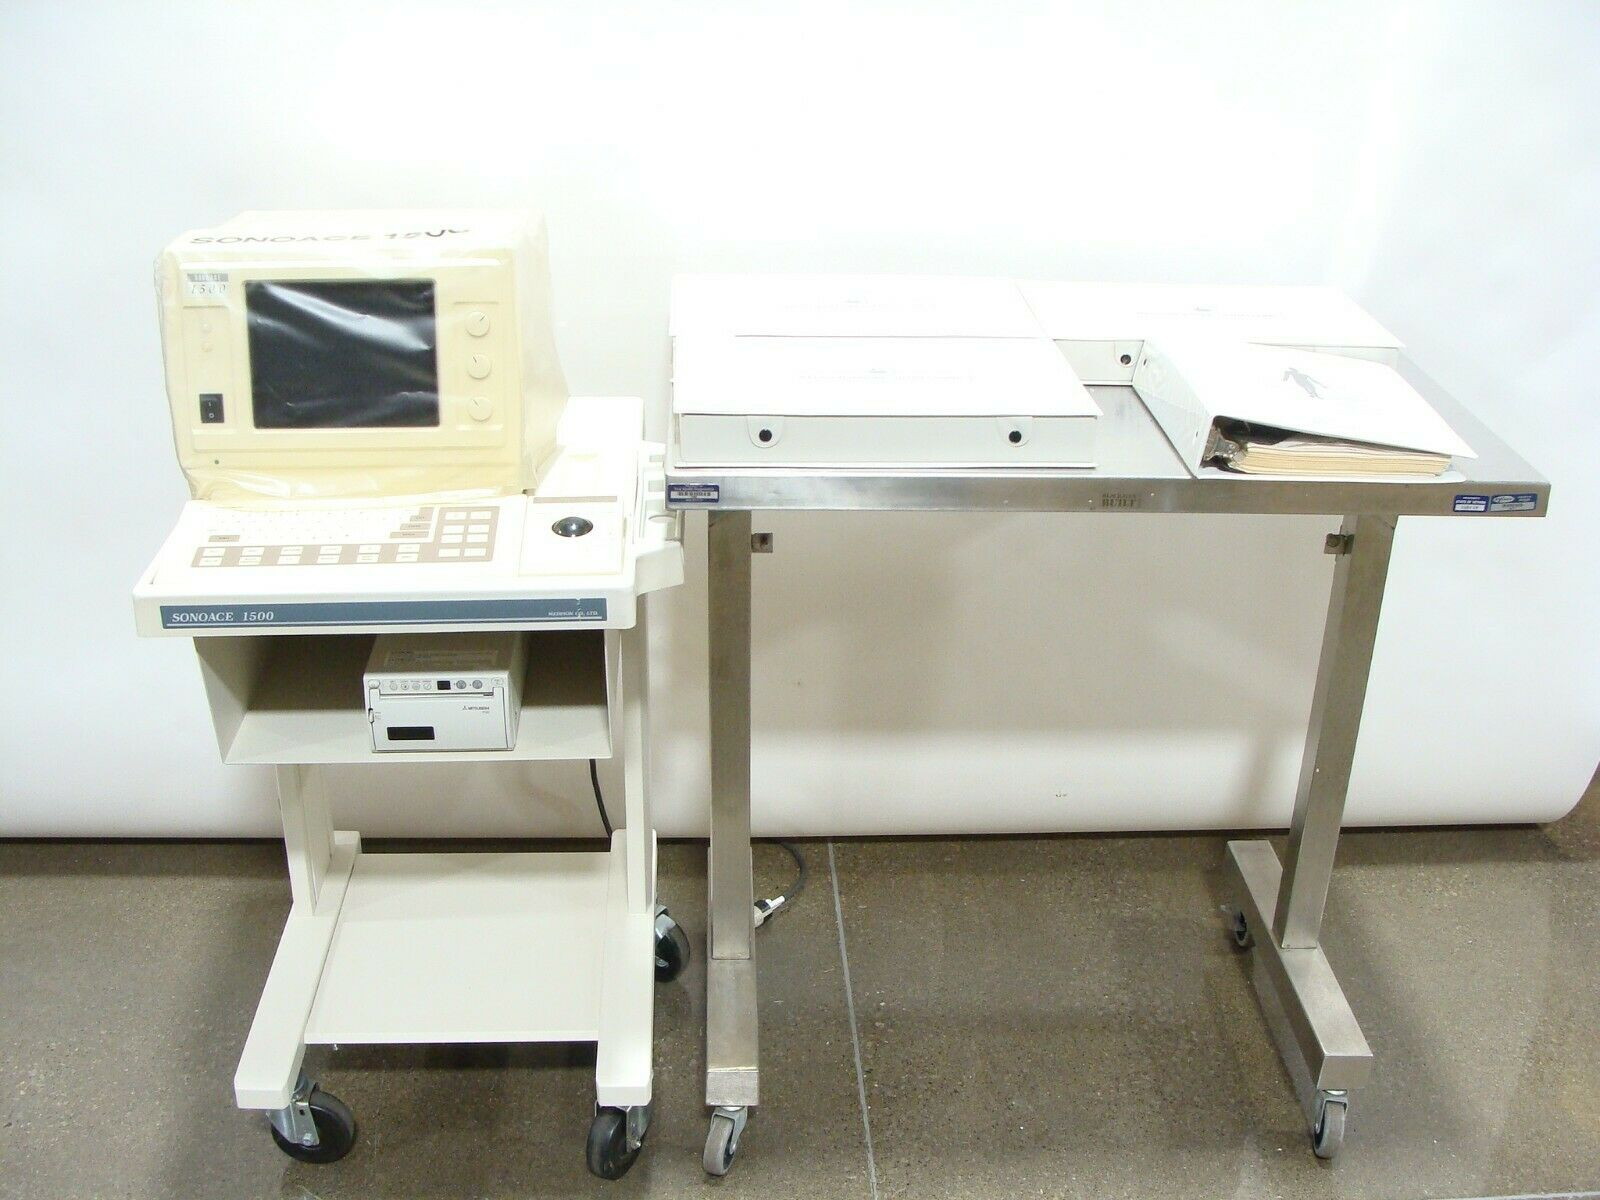 Best USED MEDISON SA-1500 SONOACE PORTABLE ABDOMINAL ULTRASOUND MACHINE + 3 PROBES, MANUAL